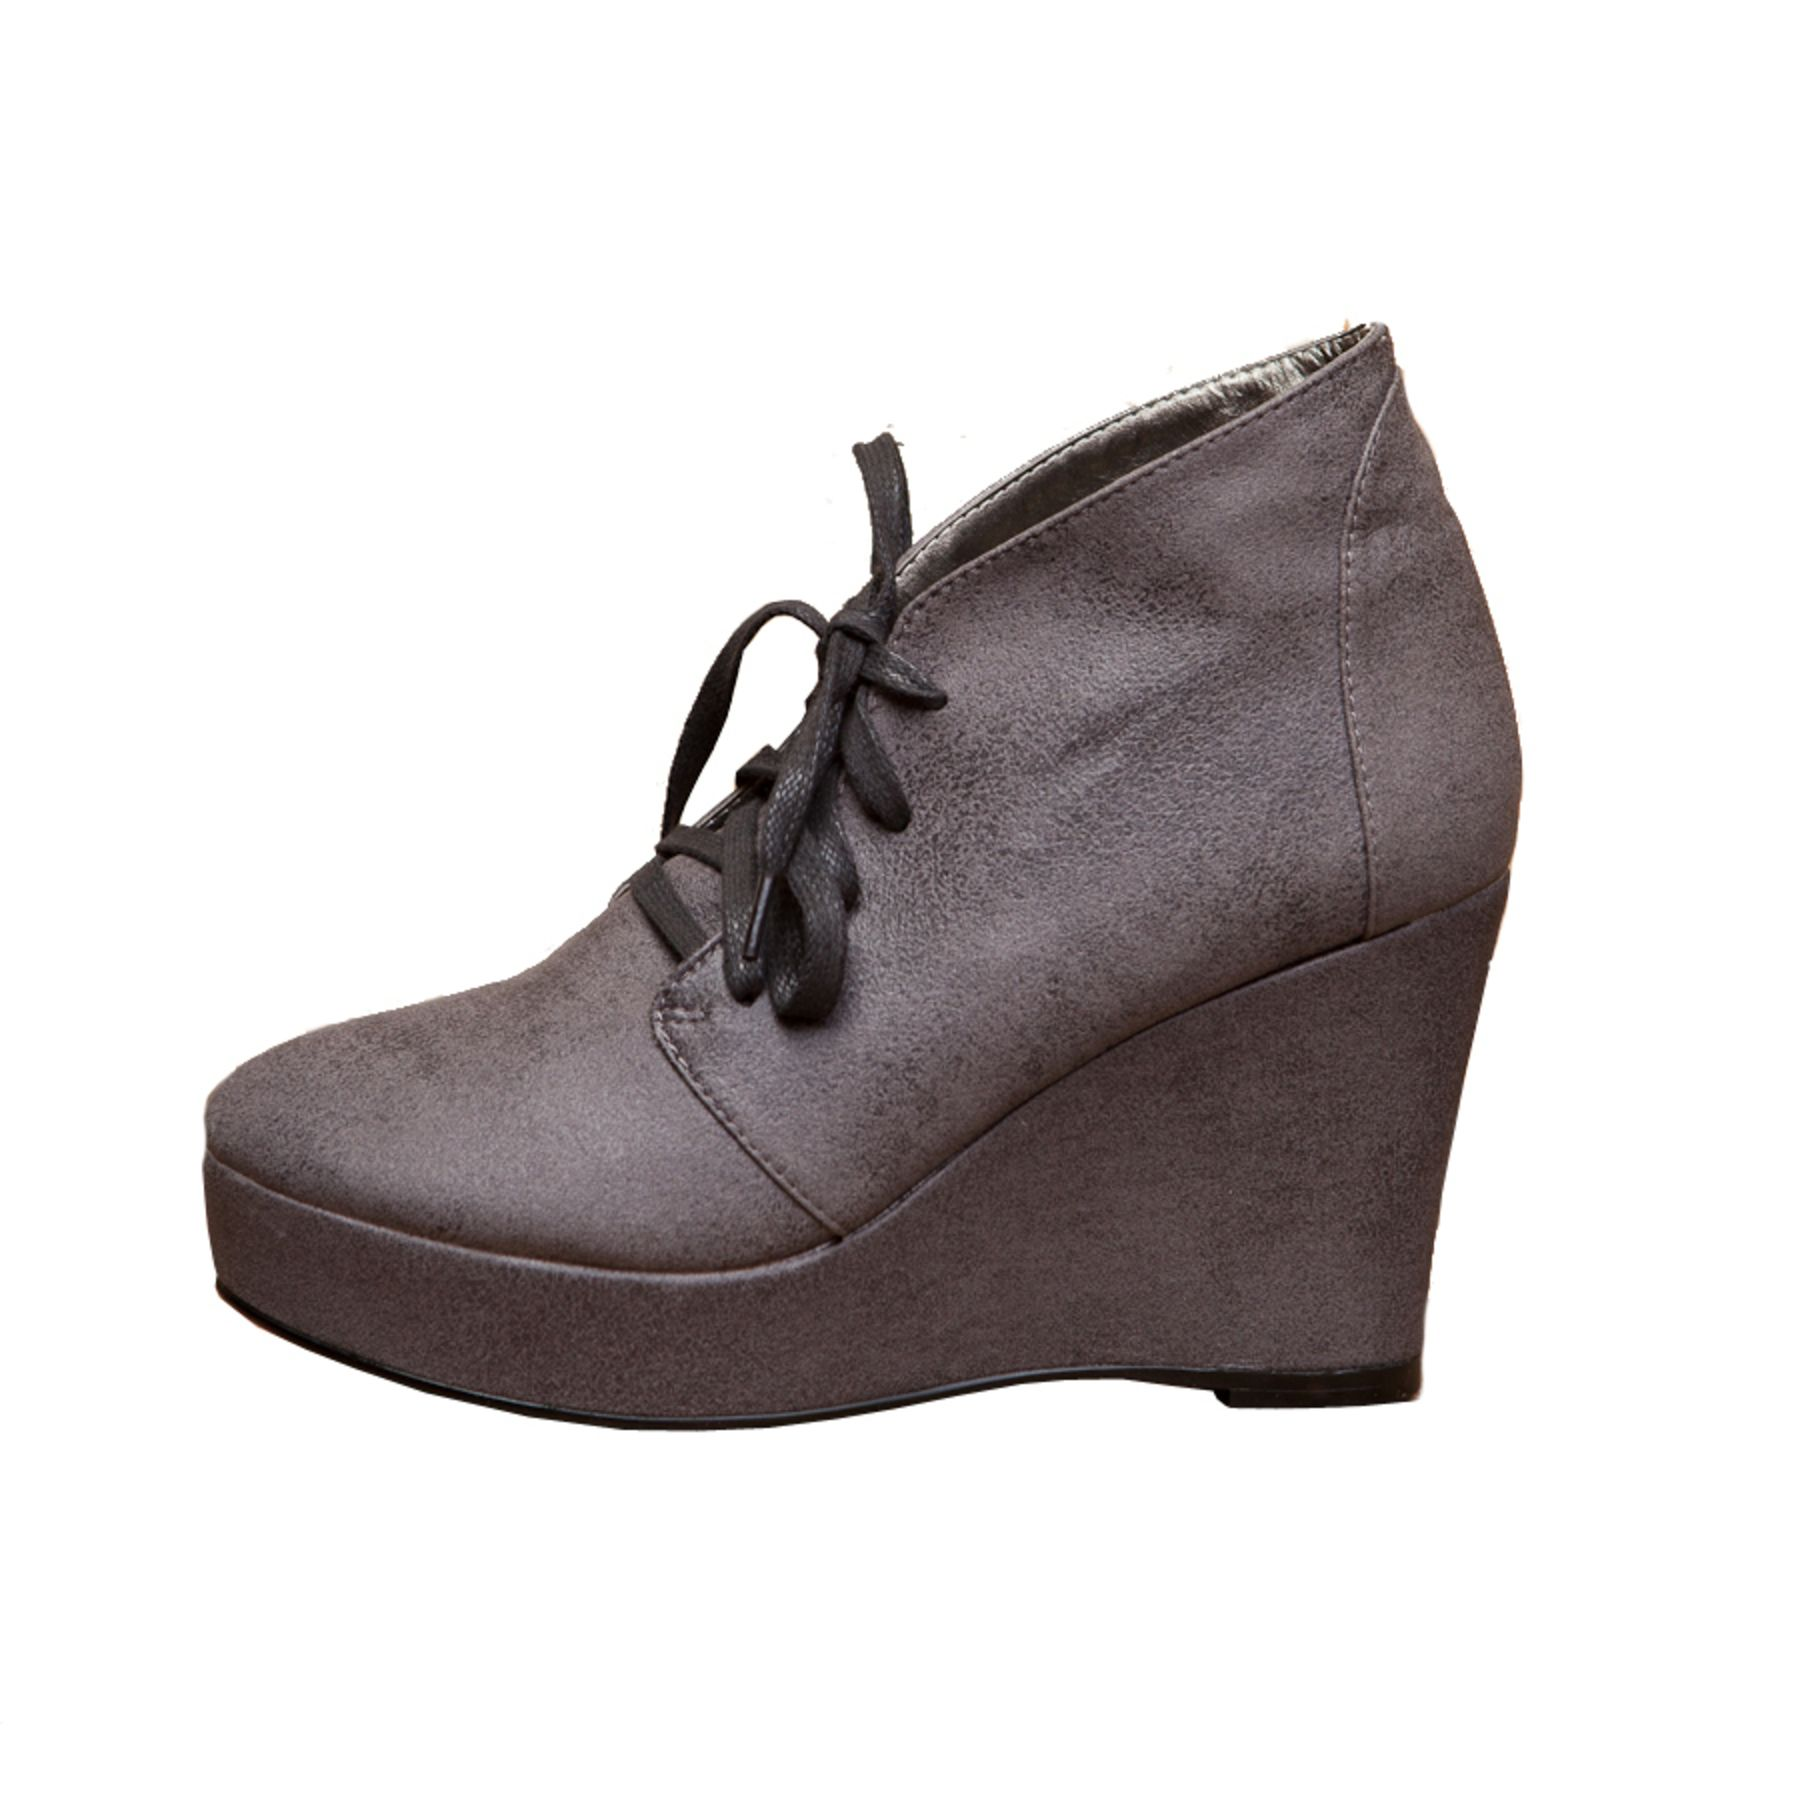 Designed by Cri de Coeur, exclusively for ecoCLOSET. Ramona Lace-up Wedge Bootie